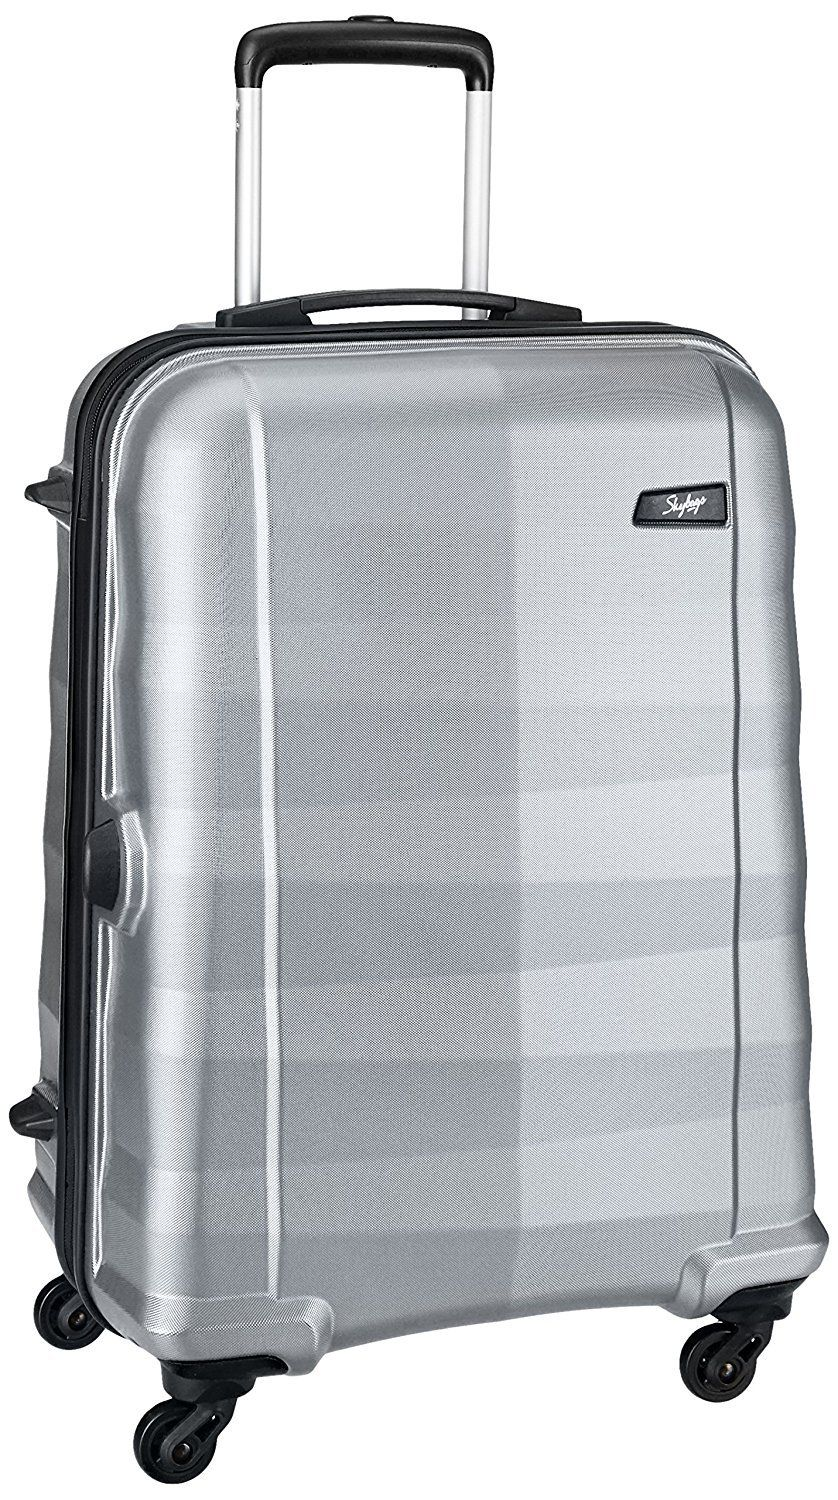 Skybags Auckland 56 cms Silver Hardsided Carry-On